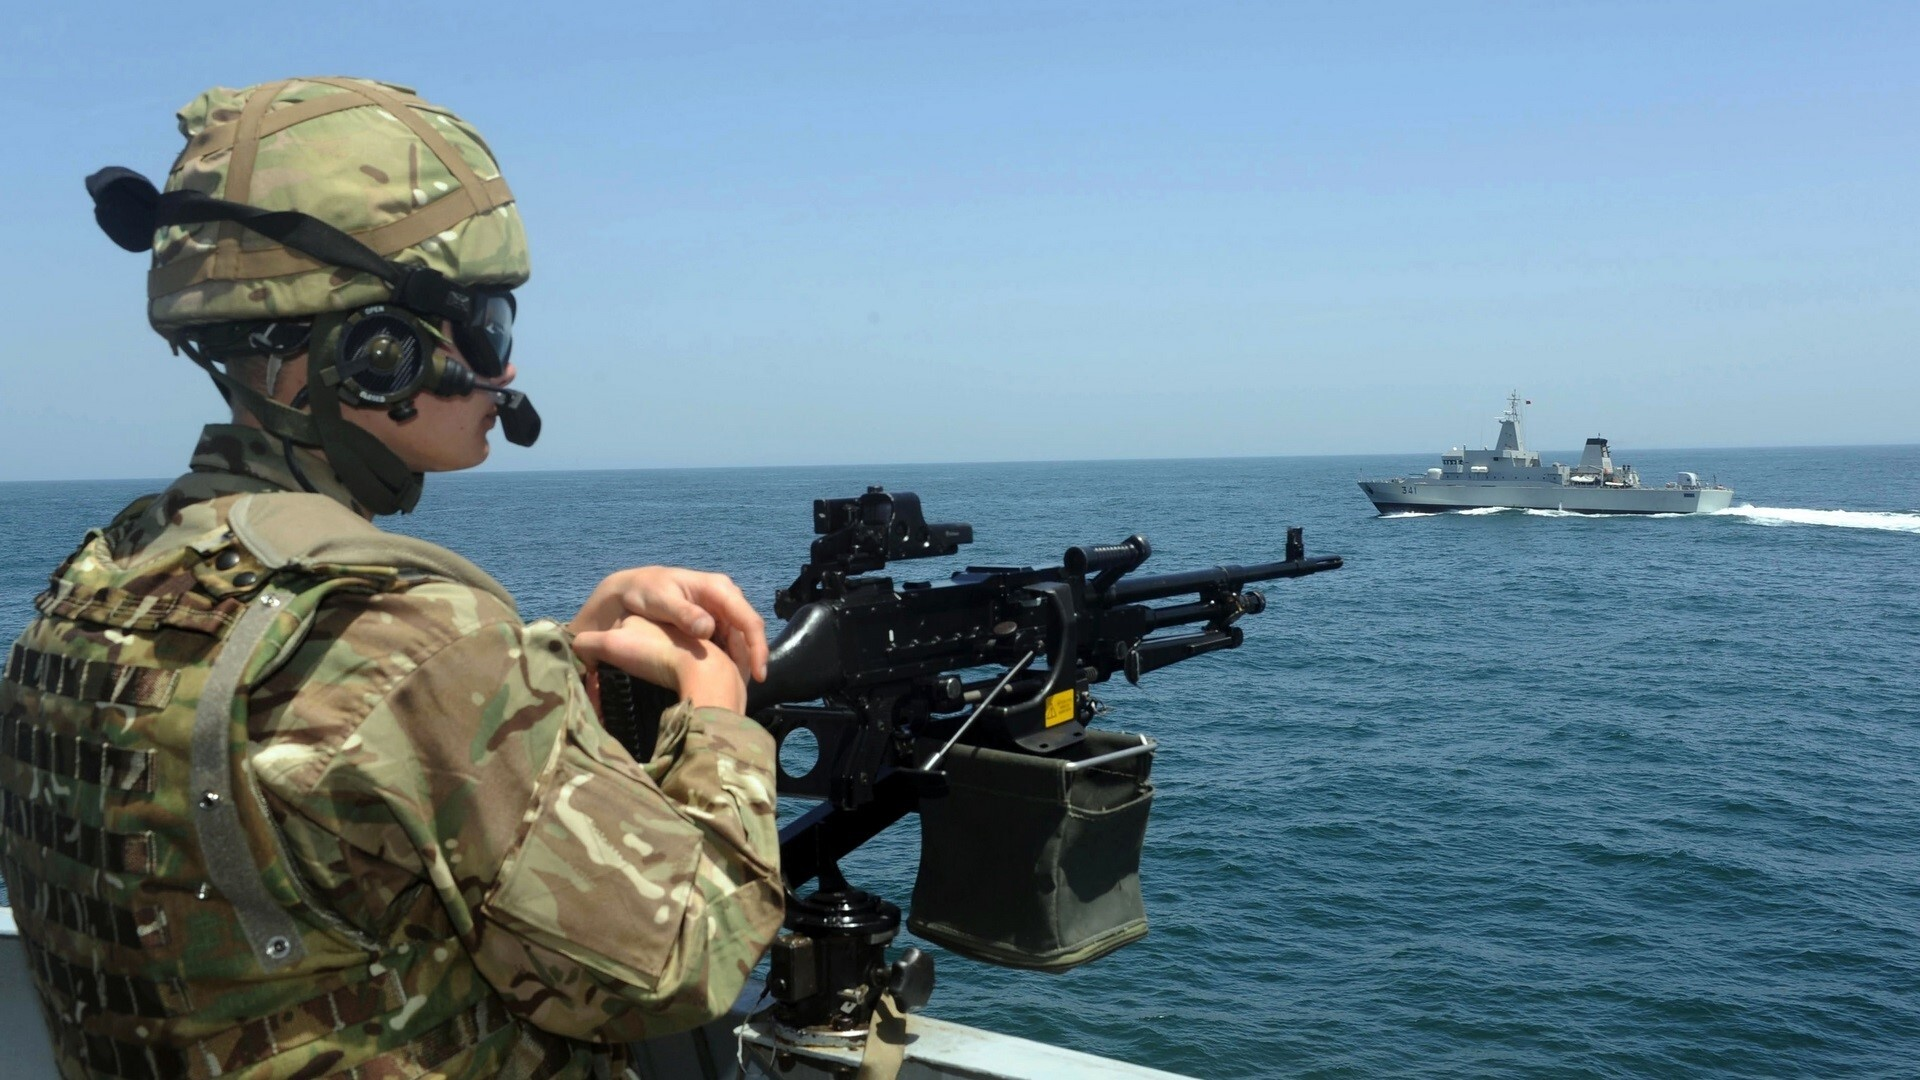 usa navy seal soldier in ship hd wallpaper hd wallpapers hd nice wallpapers